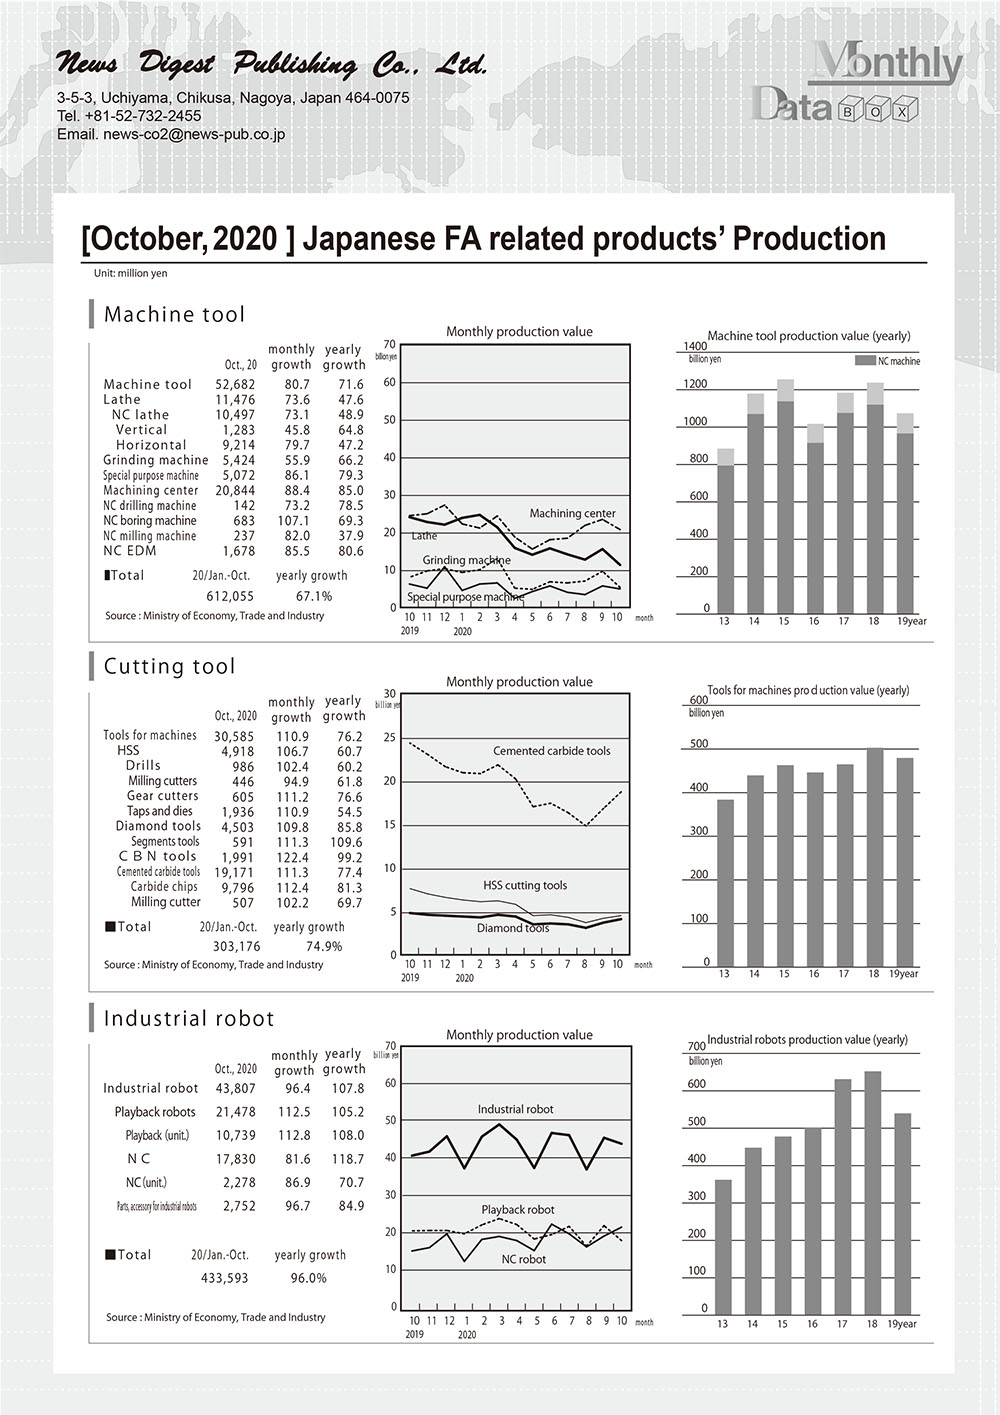 [October, 2020 ] Japanese FA related products' Production